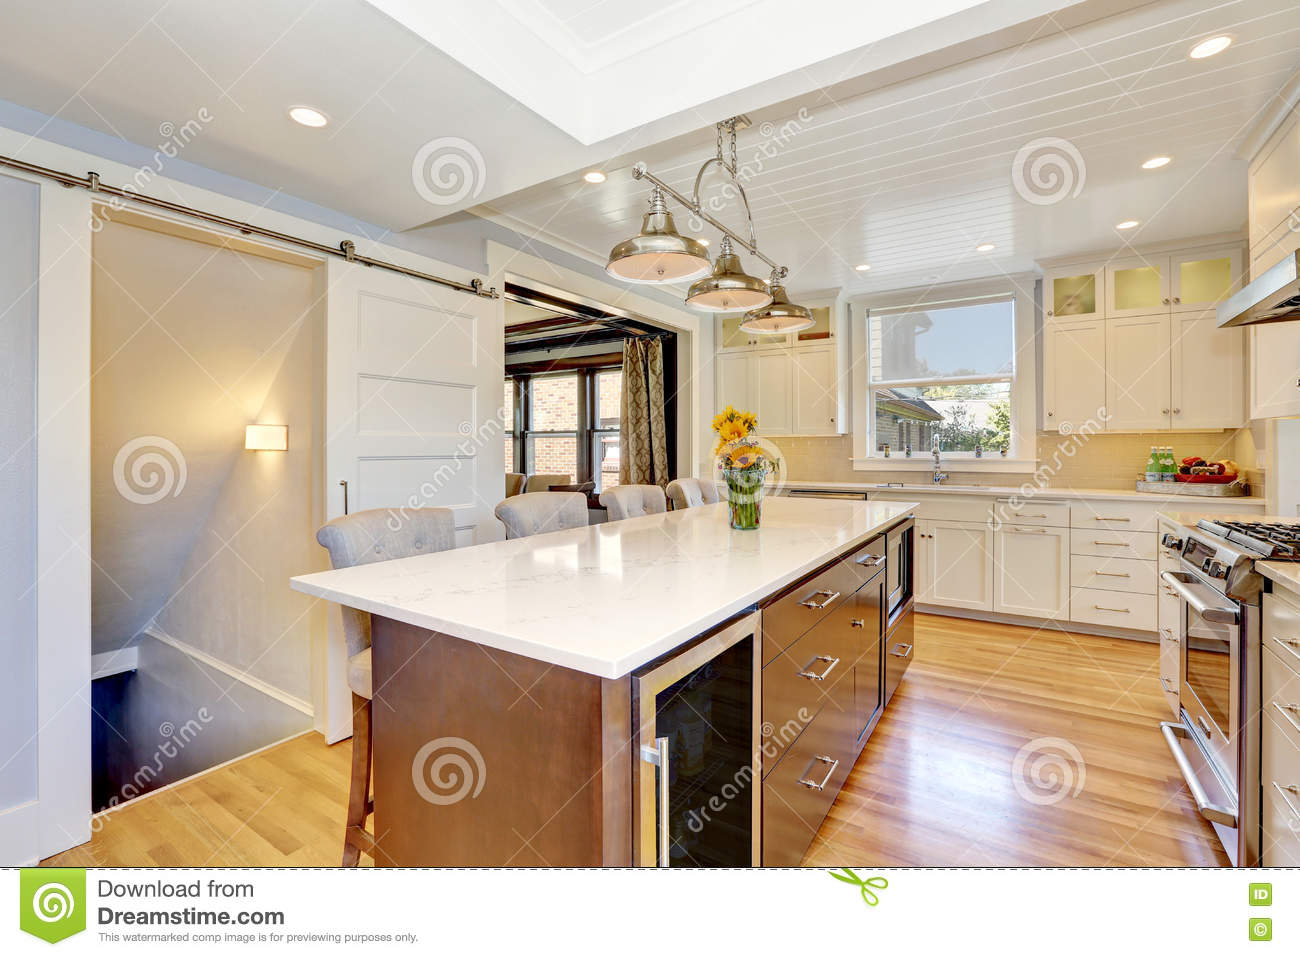 White Interior Of Kitchen Room With Large Kitchen Island Stock Image Image Of Modern Counter 76449457